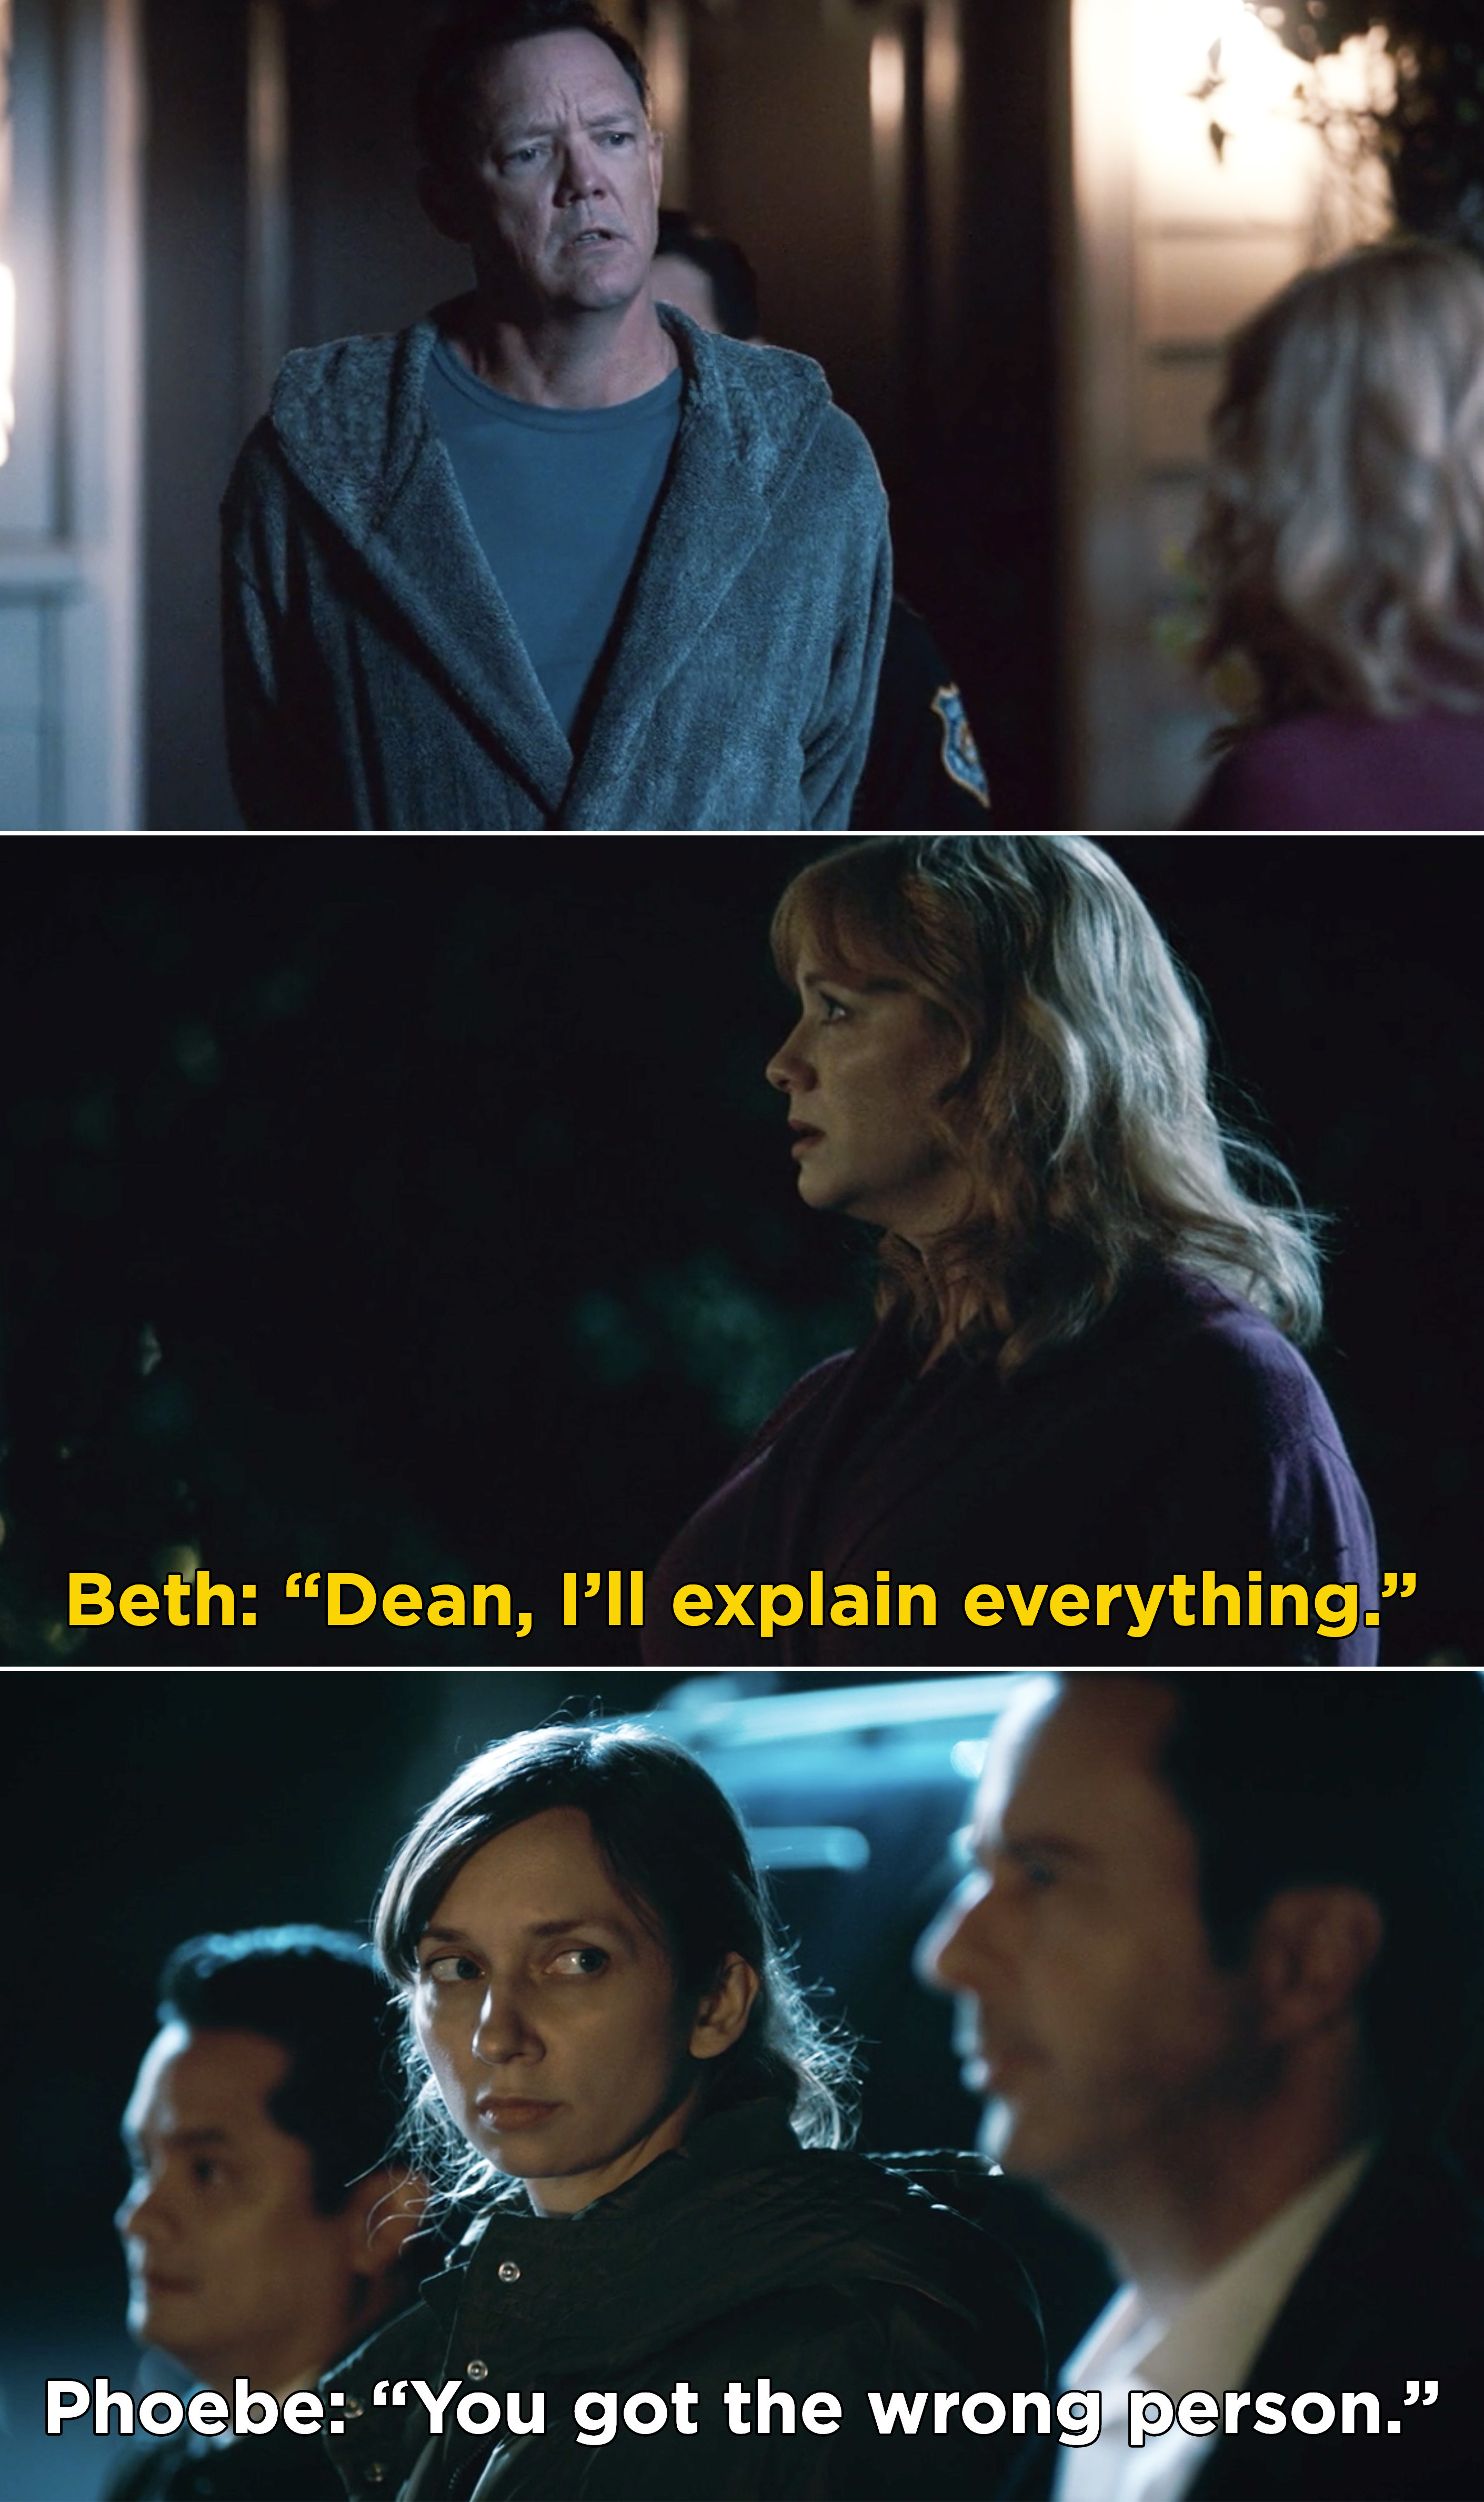 """Beth telling Dean, """"I'll explain everything"""" while he gets arrested and Phoebe telling her partner, """"You got the wrong person"""""""